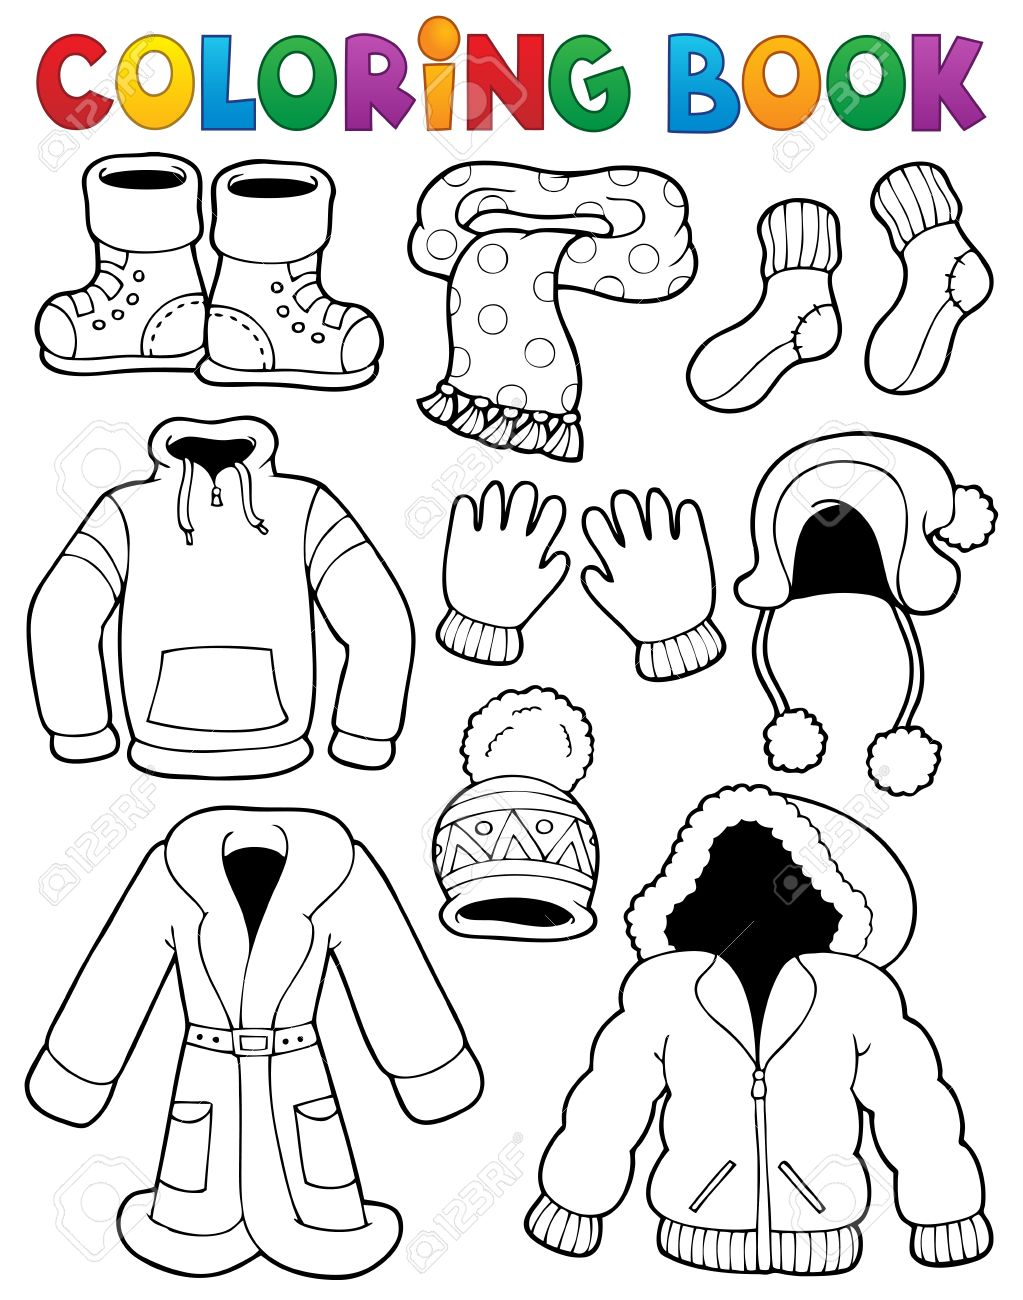 Coloring Book Clothes Theme Royalty Free Cliparts Vectors And